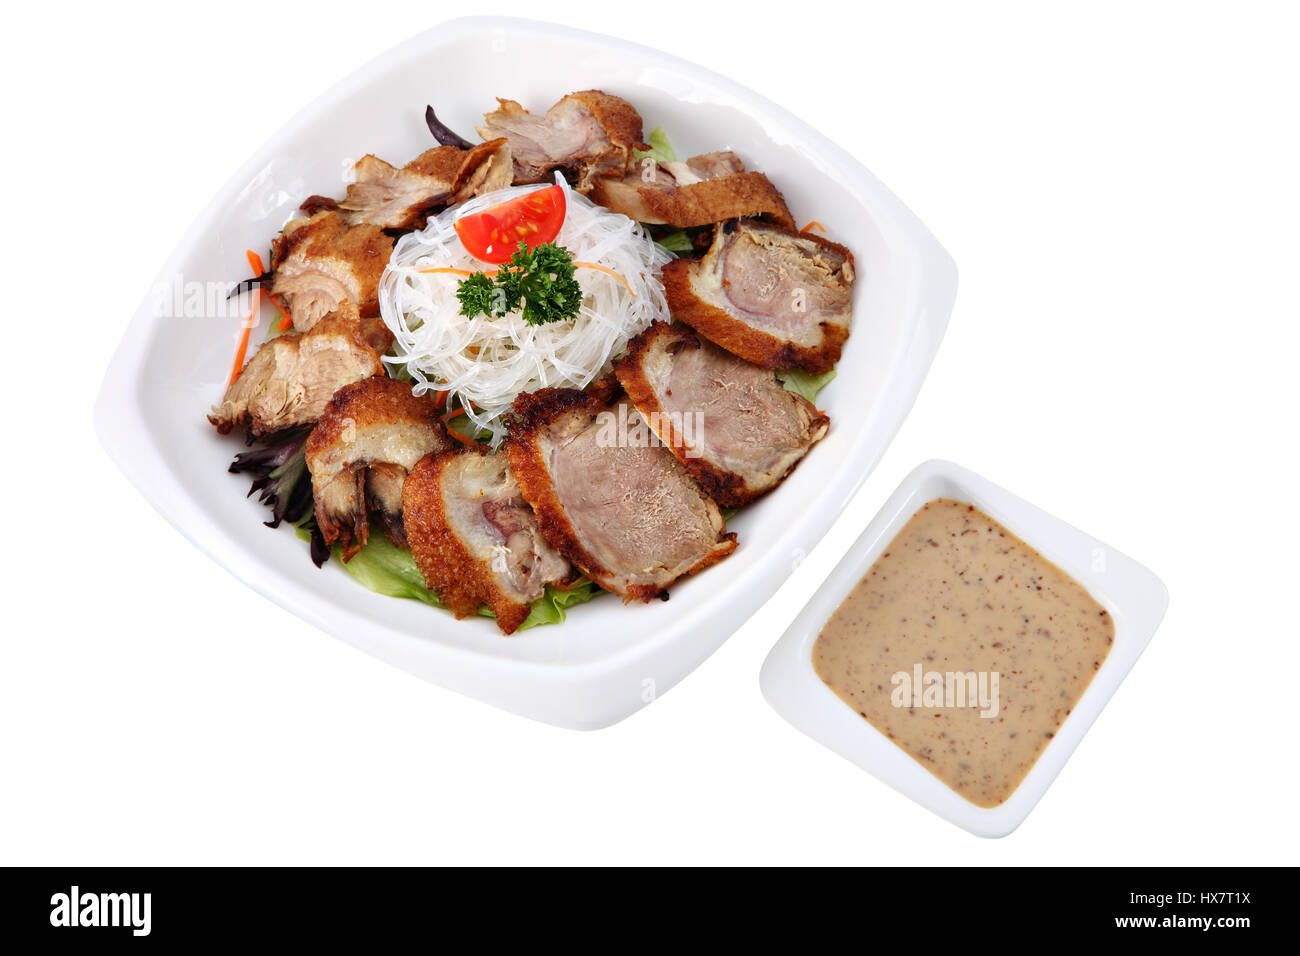 Beijing Duck Asian Cuisine Chinese Dish Peking Duck Slices Of Of Roast Duck On A White Plate With Rice Noodles And A Cup Of Sauce Isolated On Wh